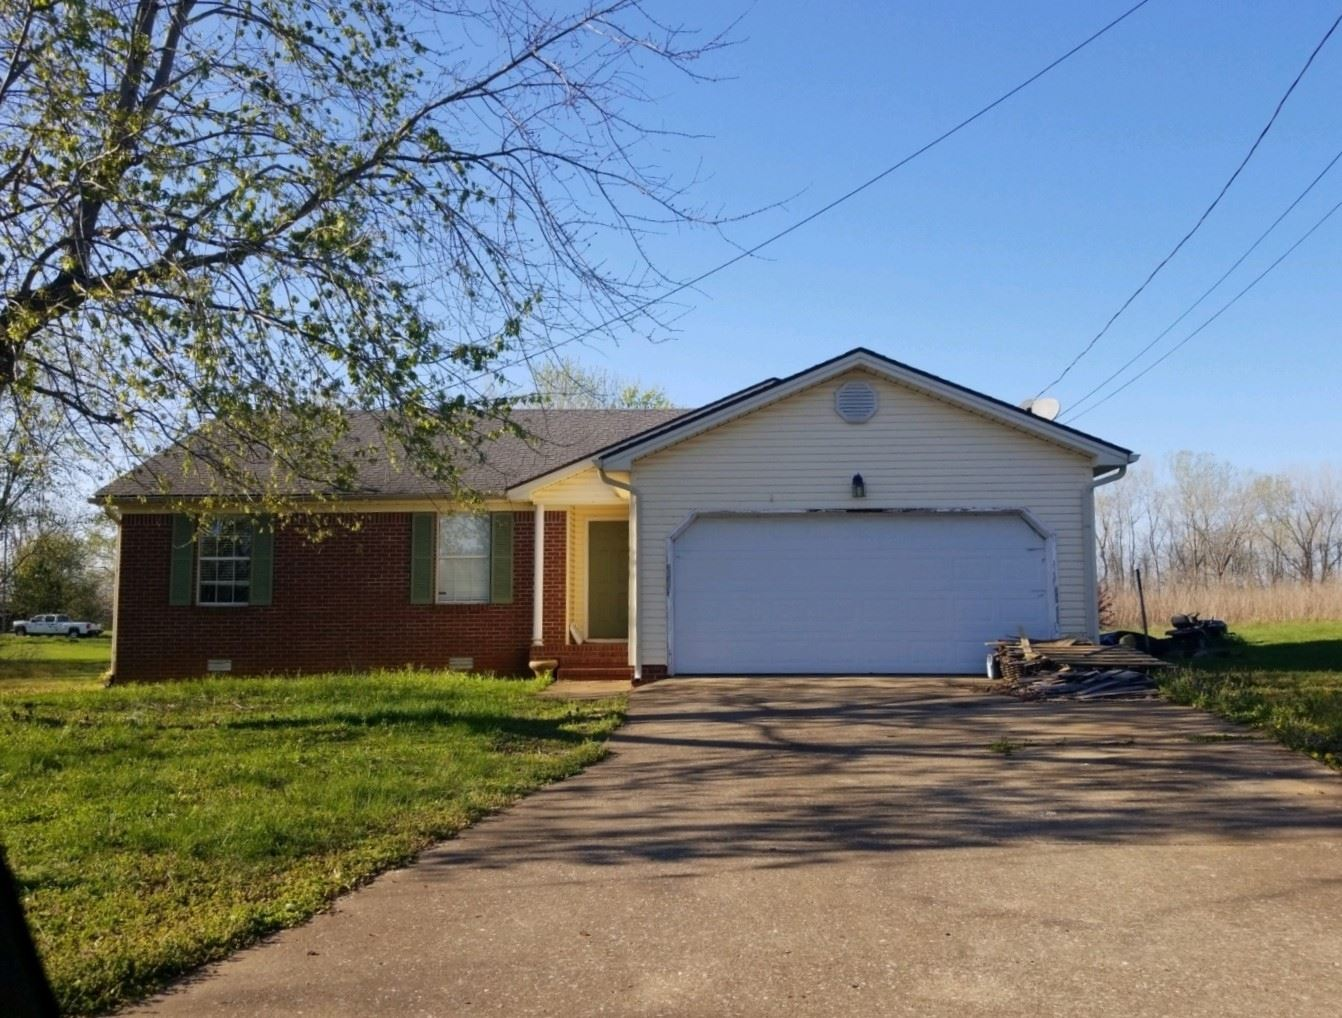 8630 Swale Ct, Oak Grove, KY 42262 - MLS#: 2242245